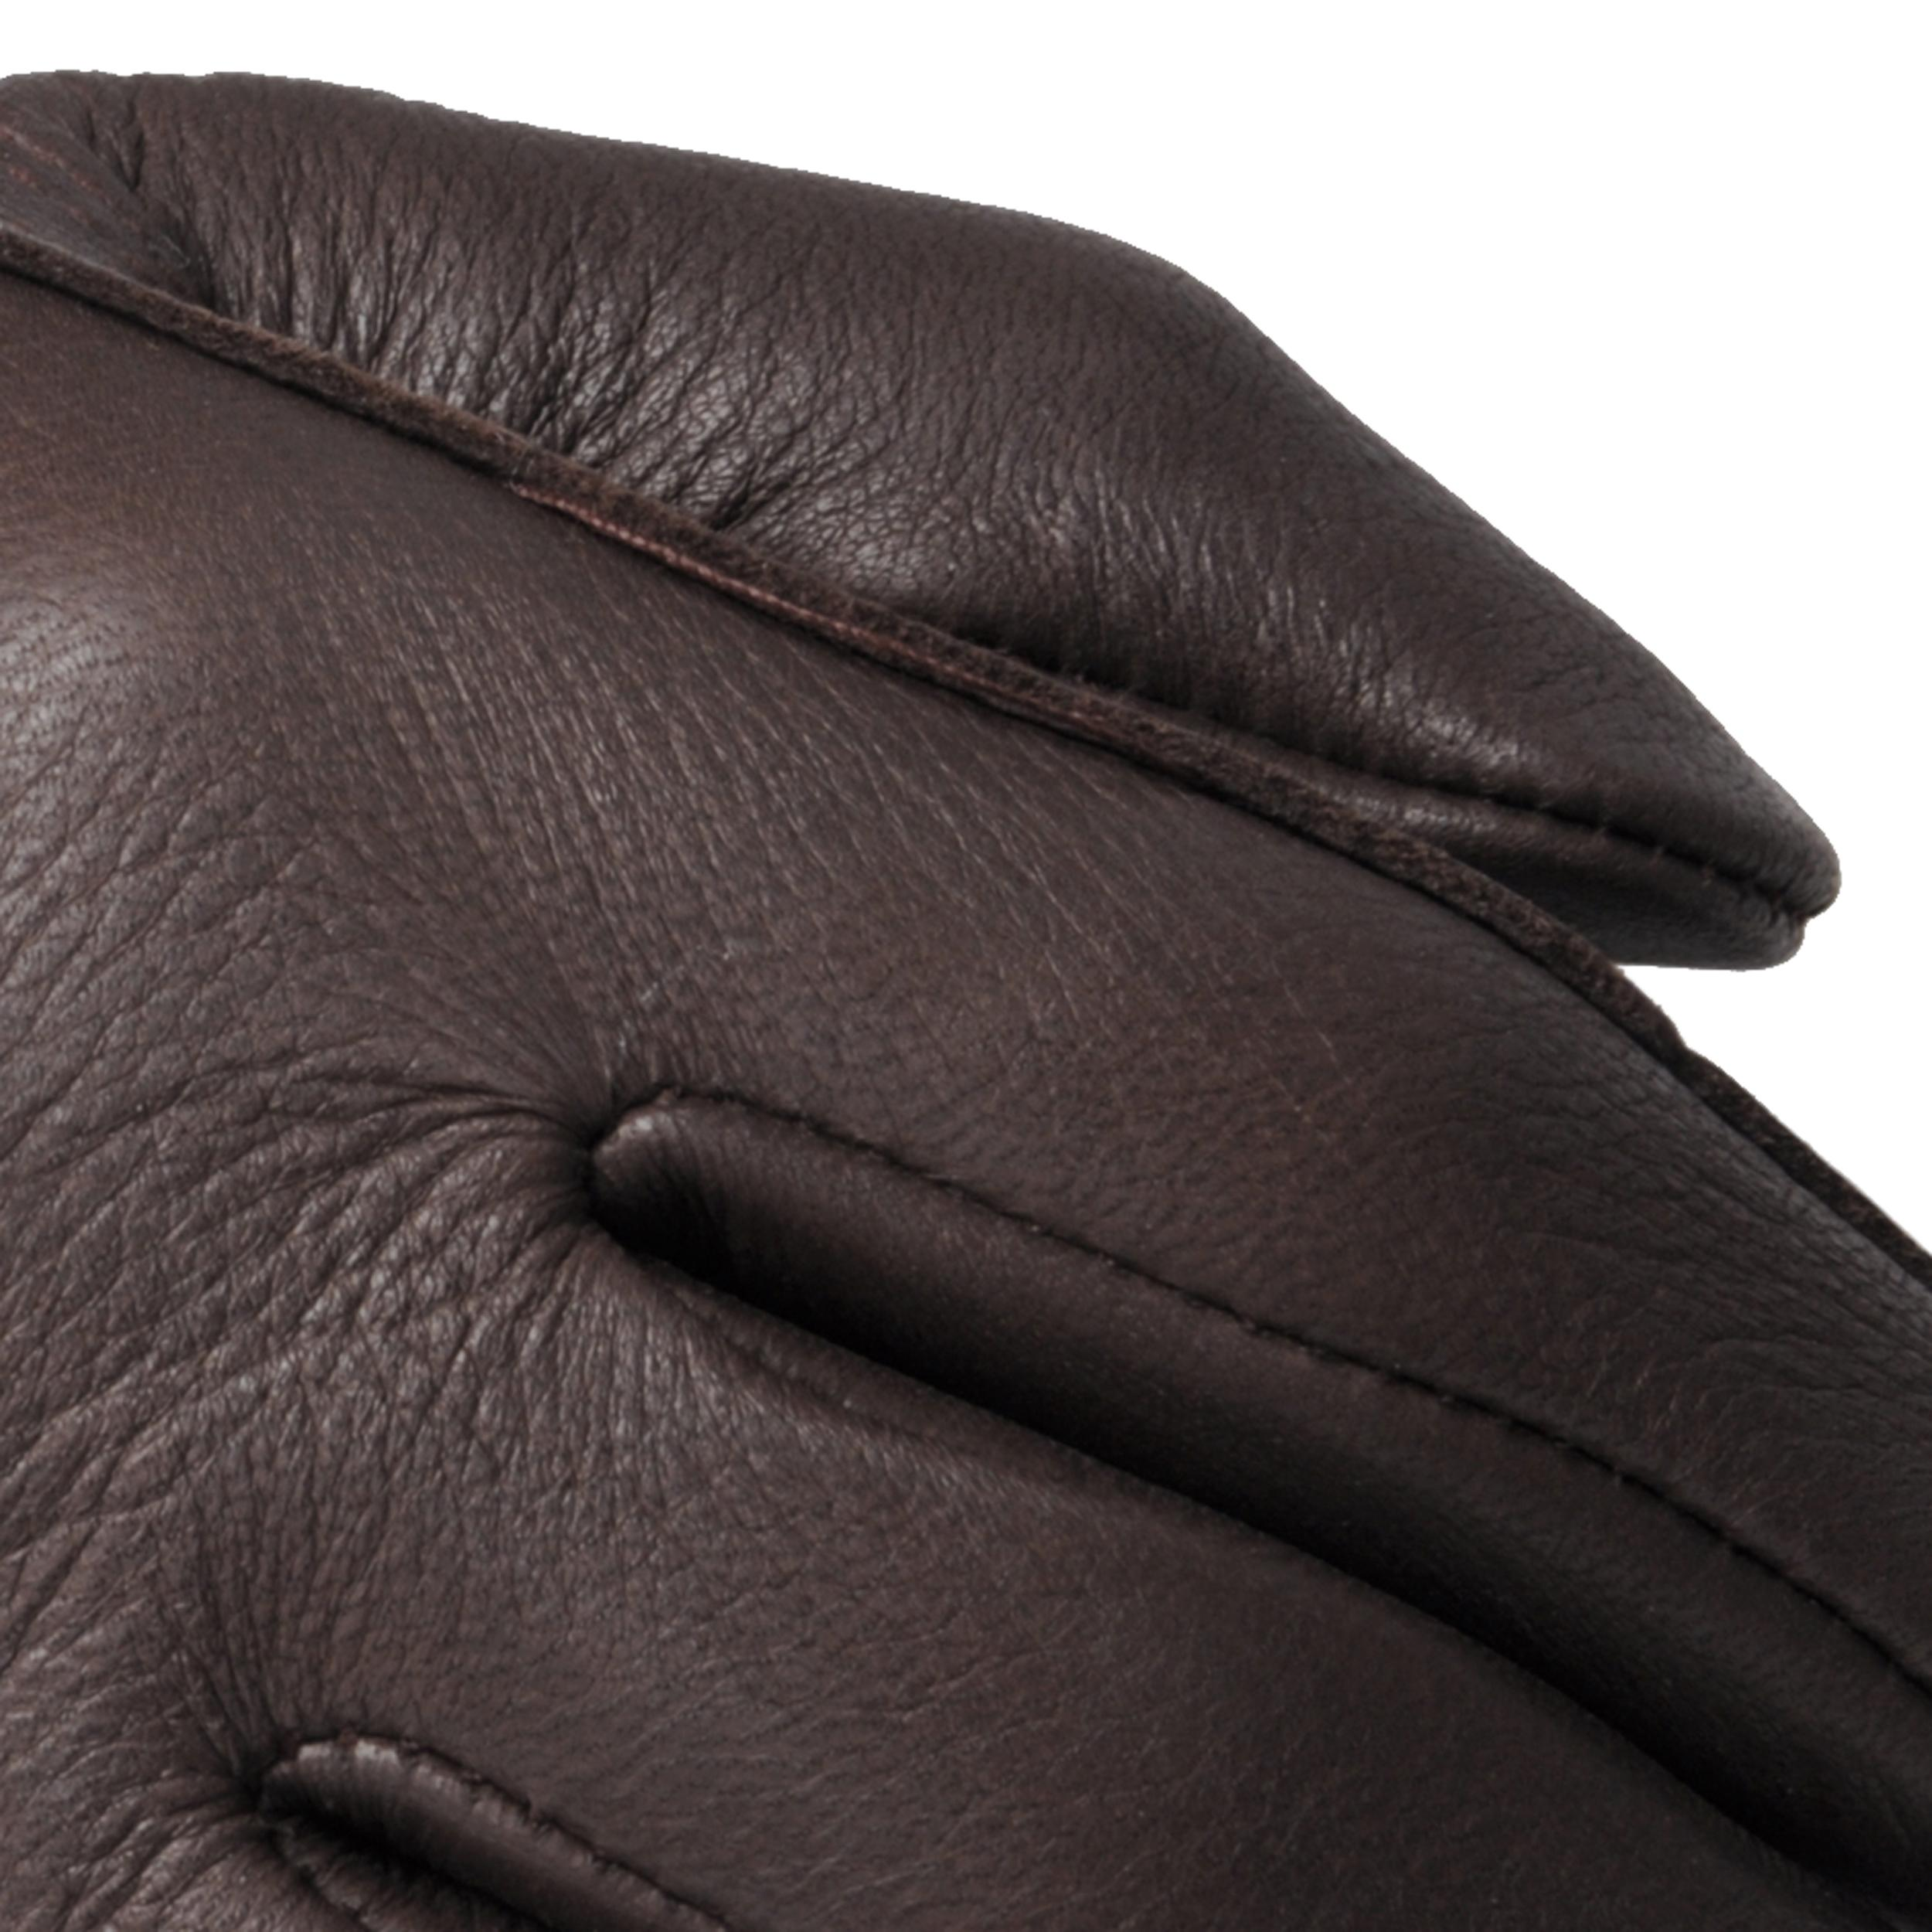 Mens deerskin gloves -  Daxx Men S Top Grain Deerskin Leather Gloves